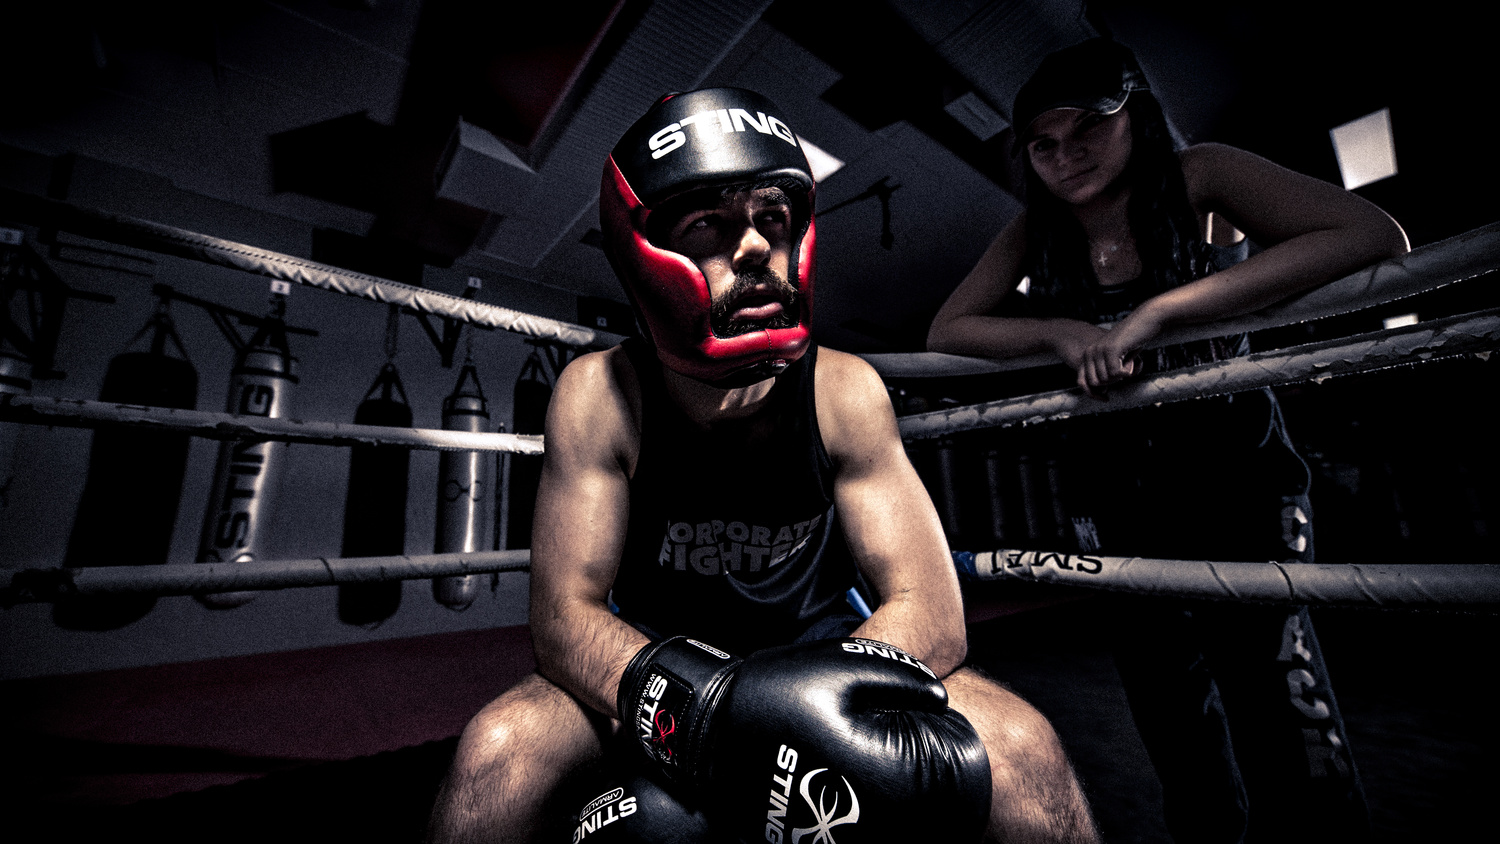 Corporate Fighter - In the Corner by James John